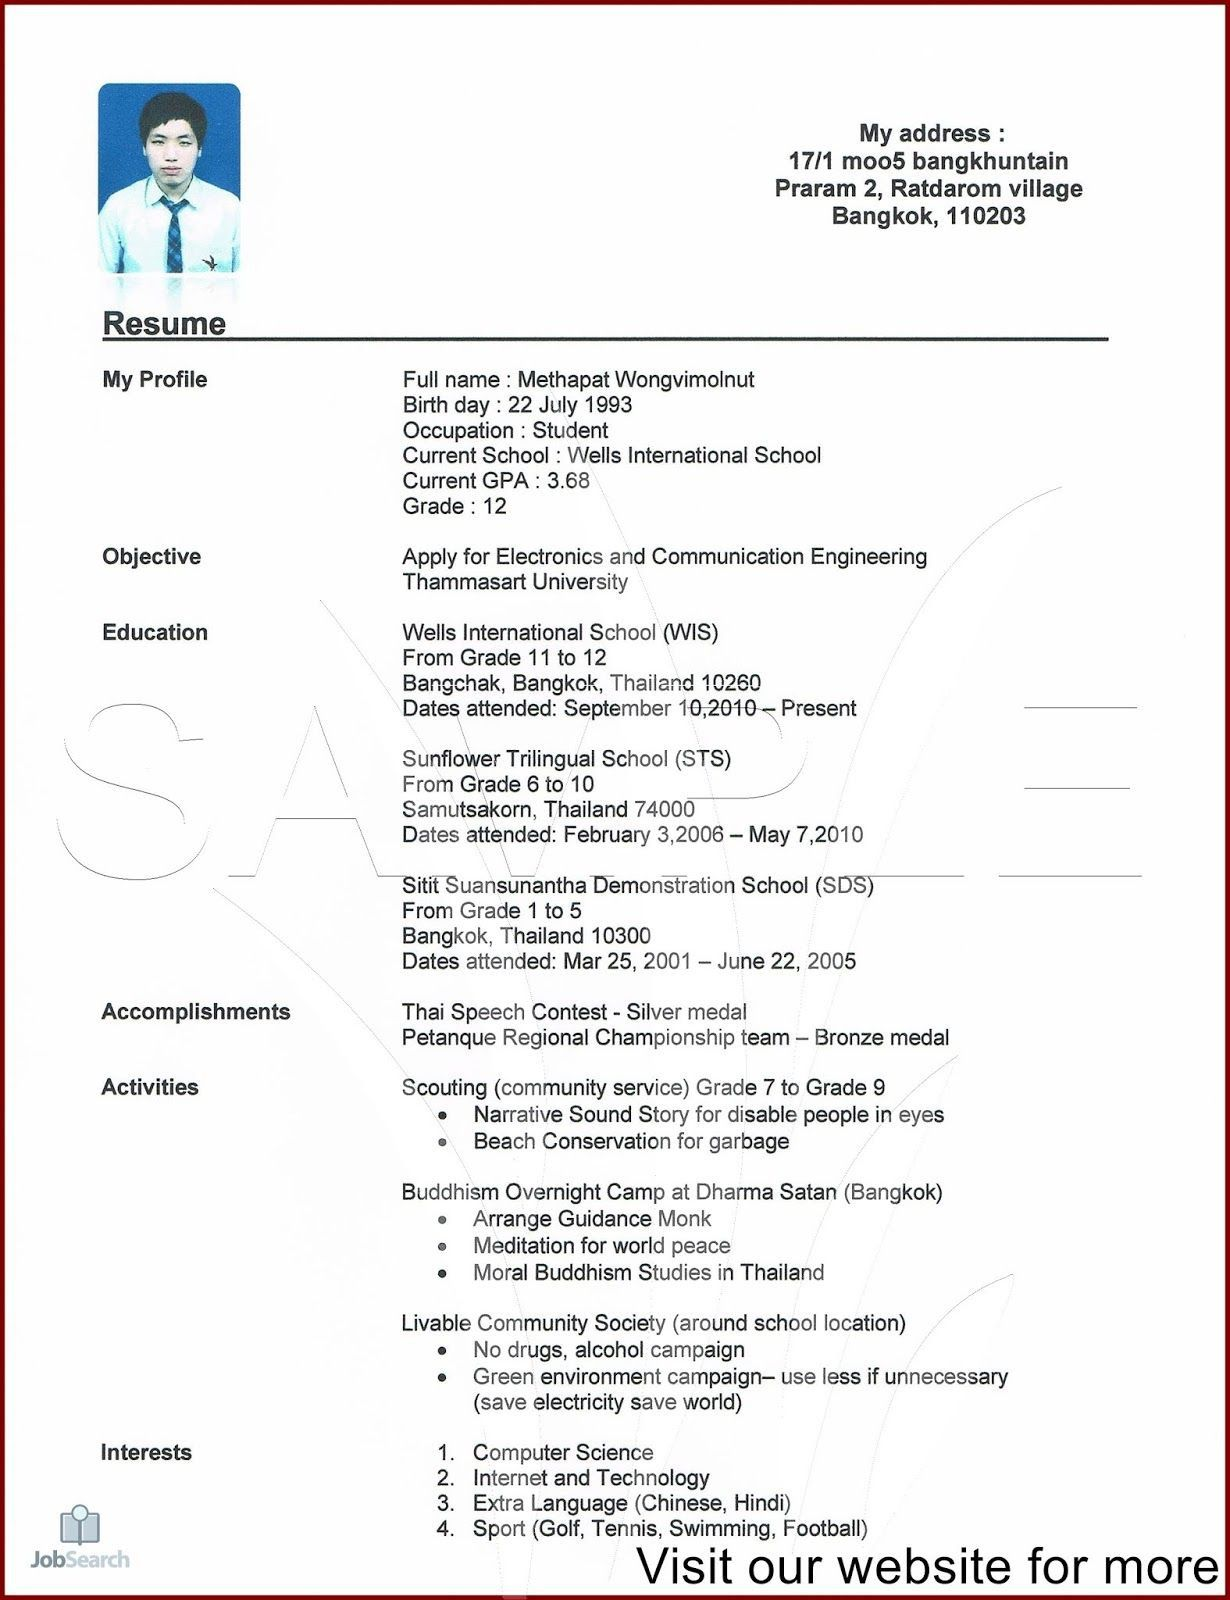 003 Amazing Student Resume Template Word Free Download Inspiration  College MicrosoftFull